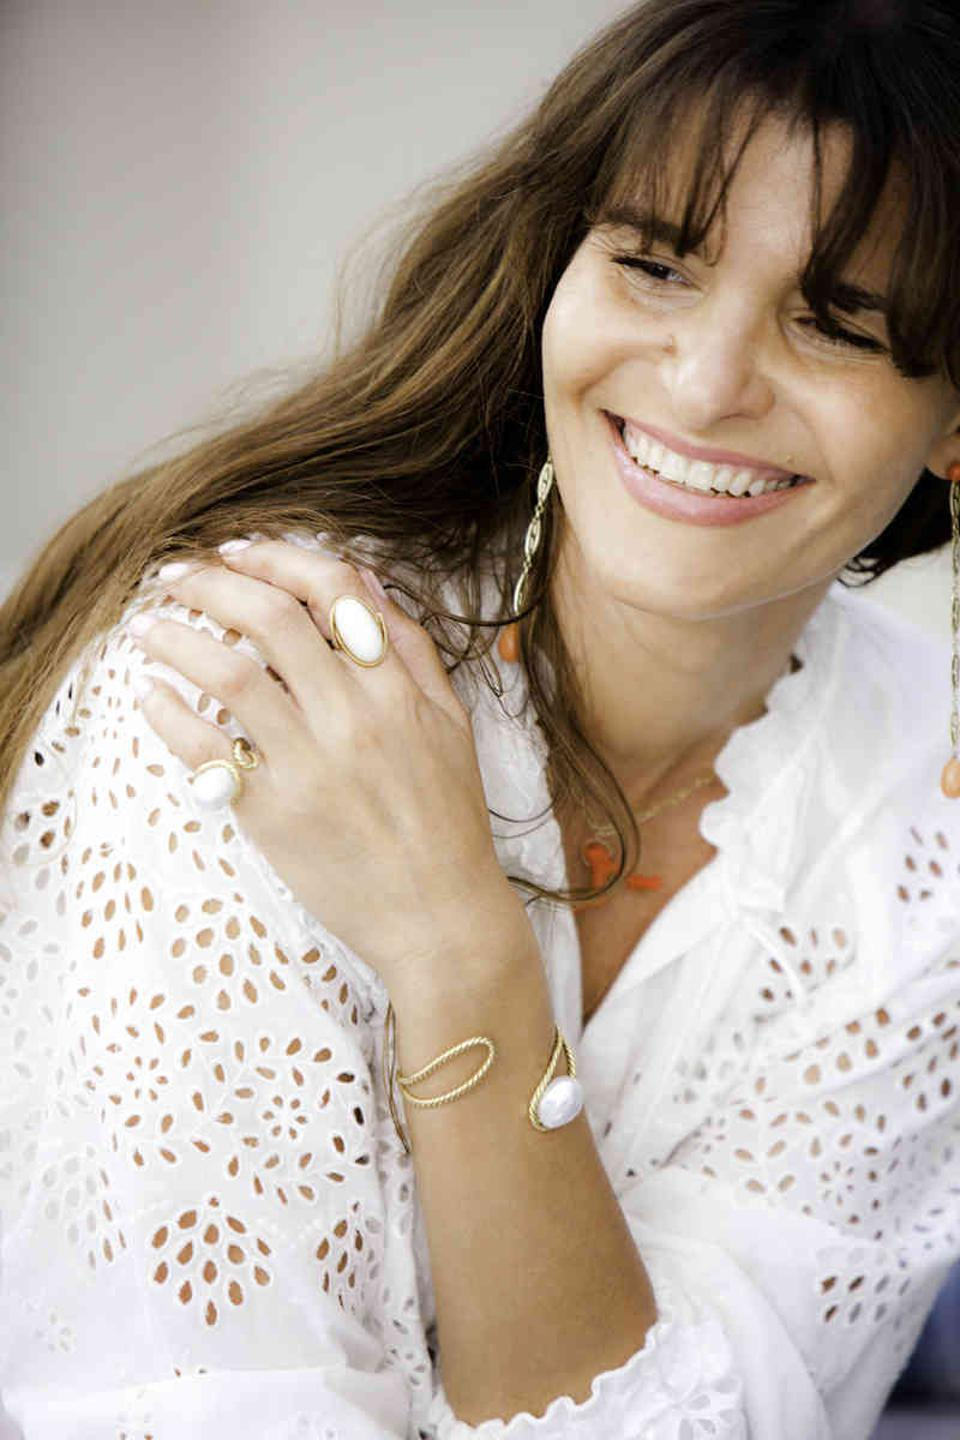 Haute Victoire designer and founder Yasmina Benazzou creates organically luxurious jewels